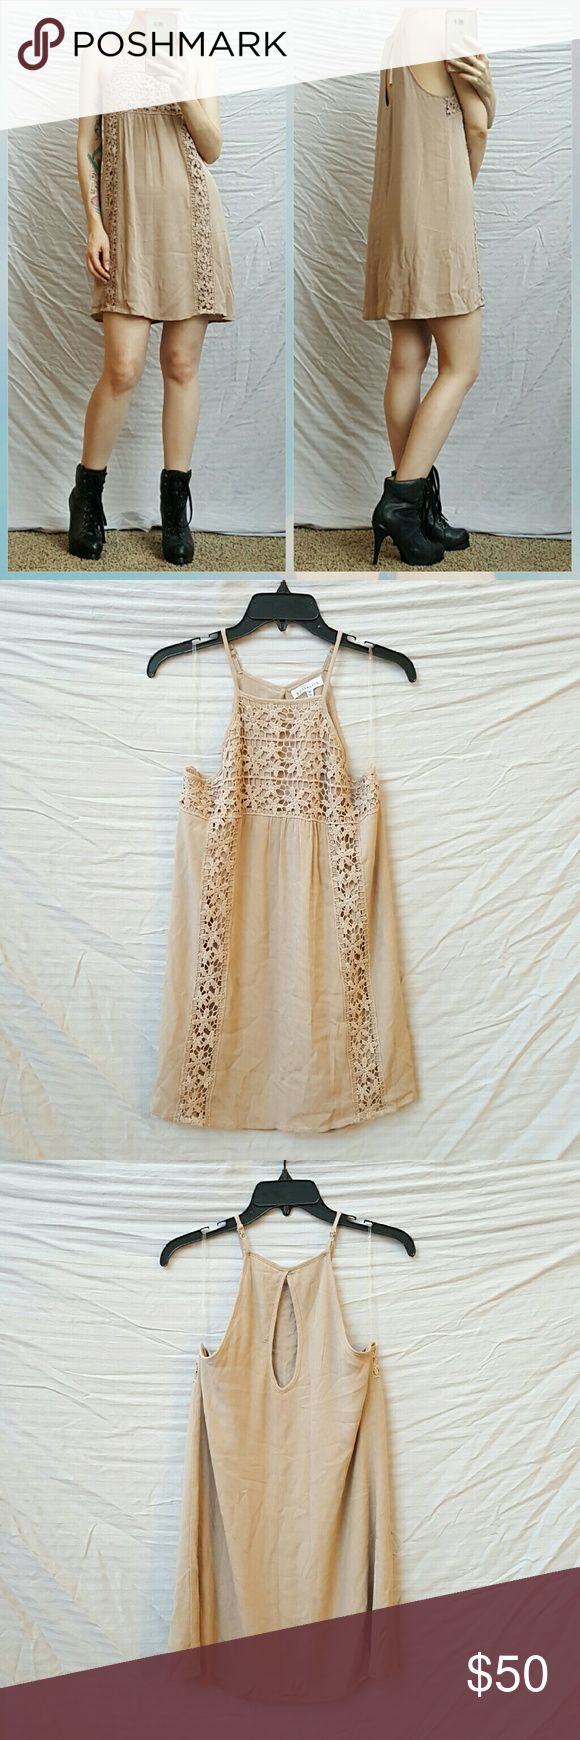 Socialite Crochet Cami Dress NWT!  Crocheted  accents and keyhole back on a nude, beige, tan, taupe dress.  So comfortable and cute!  Can be very versatile. Socialite Dresses